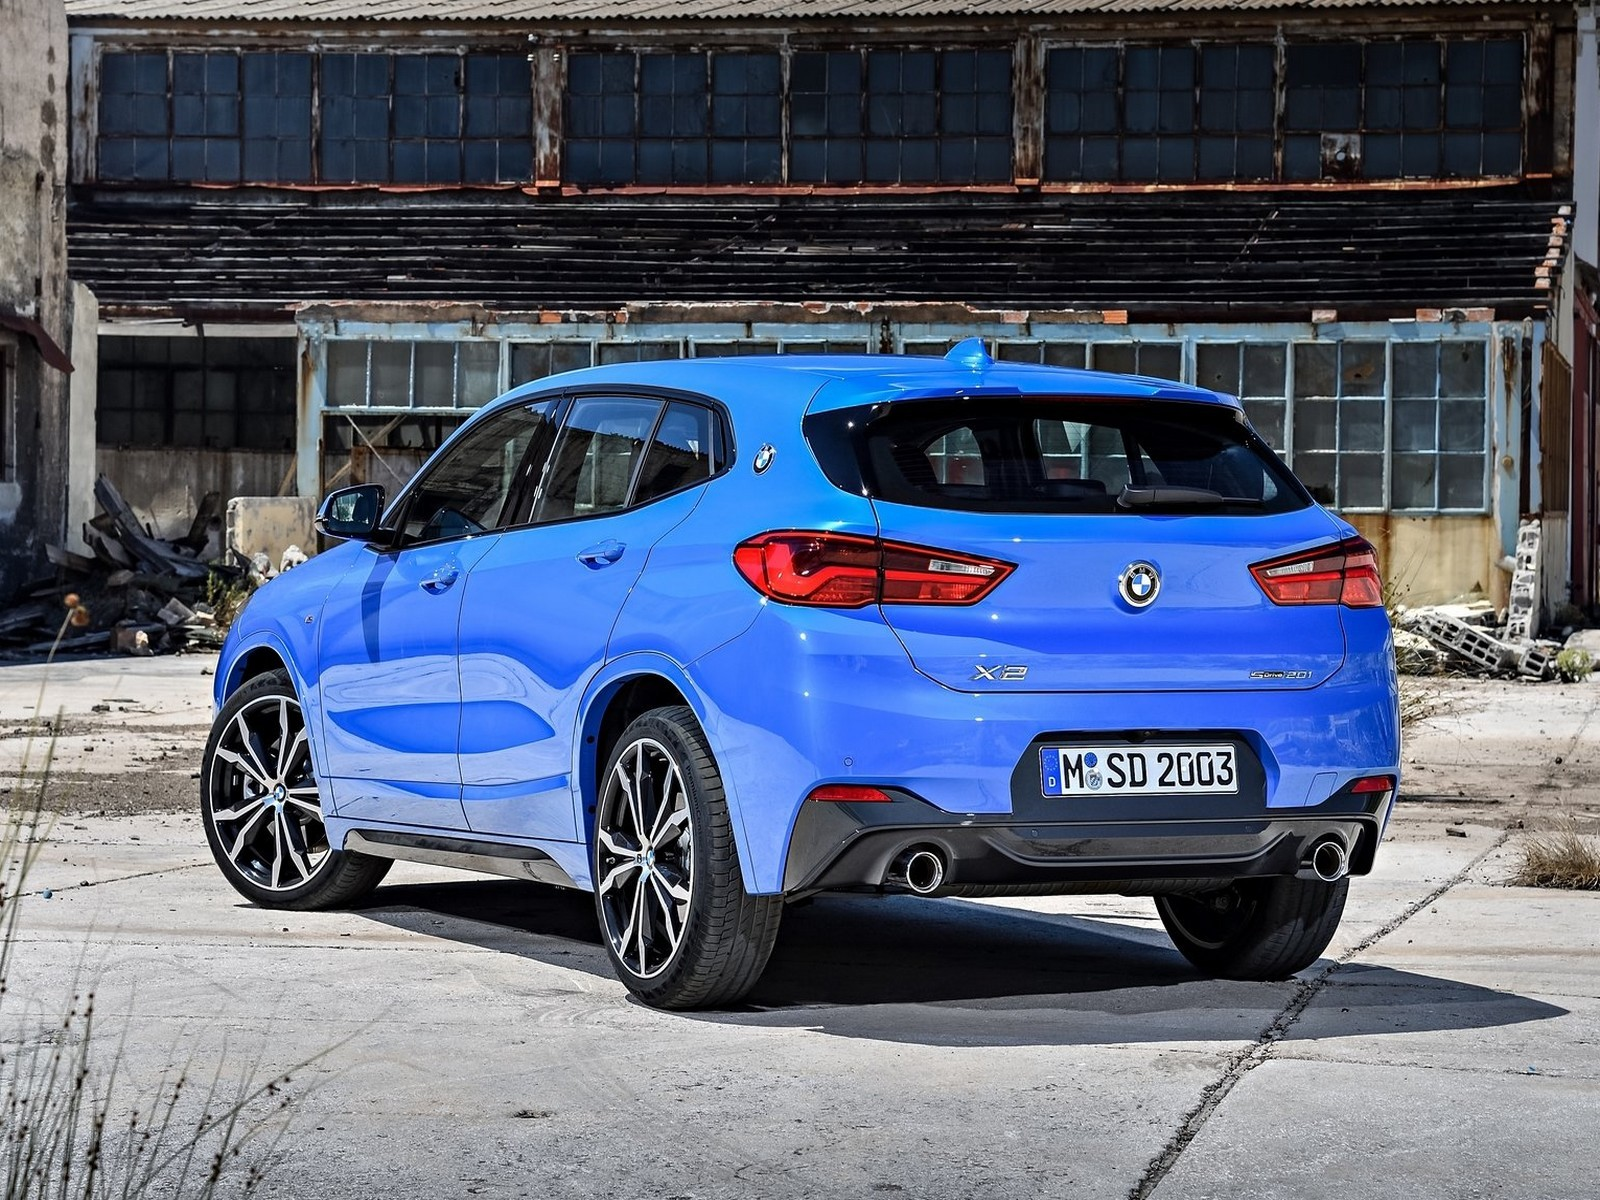 bmw x2 m sport 2019 photoscar. Black Bedroom Furniture Sets. Home Design Ideas